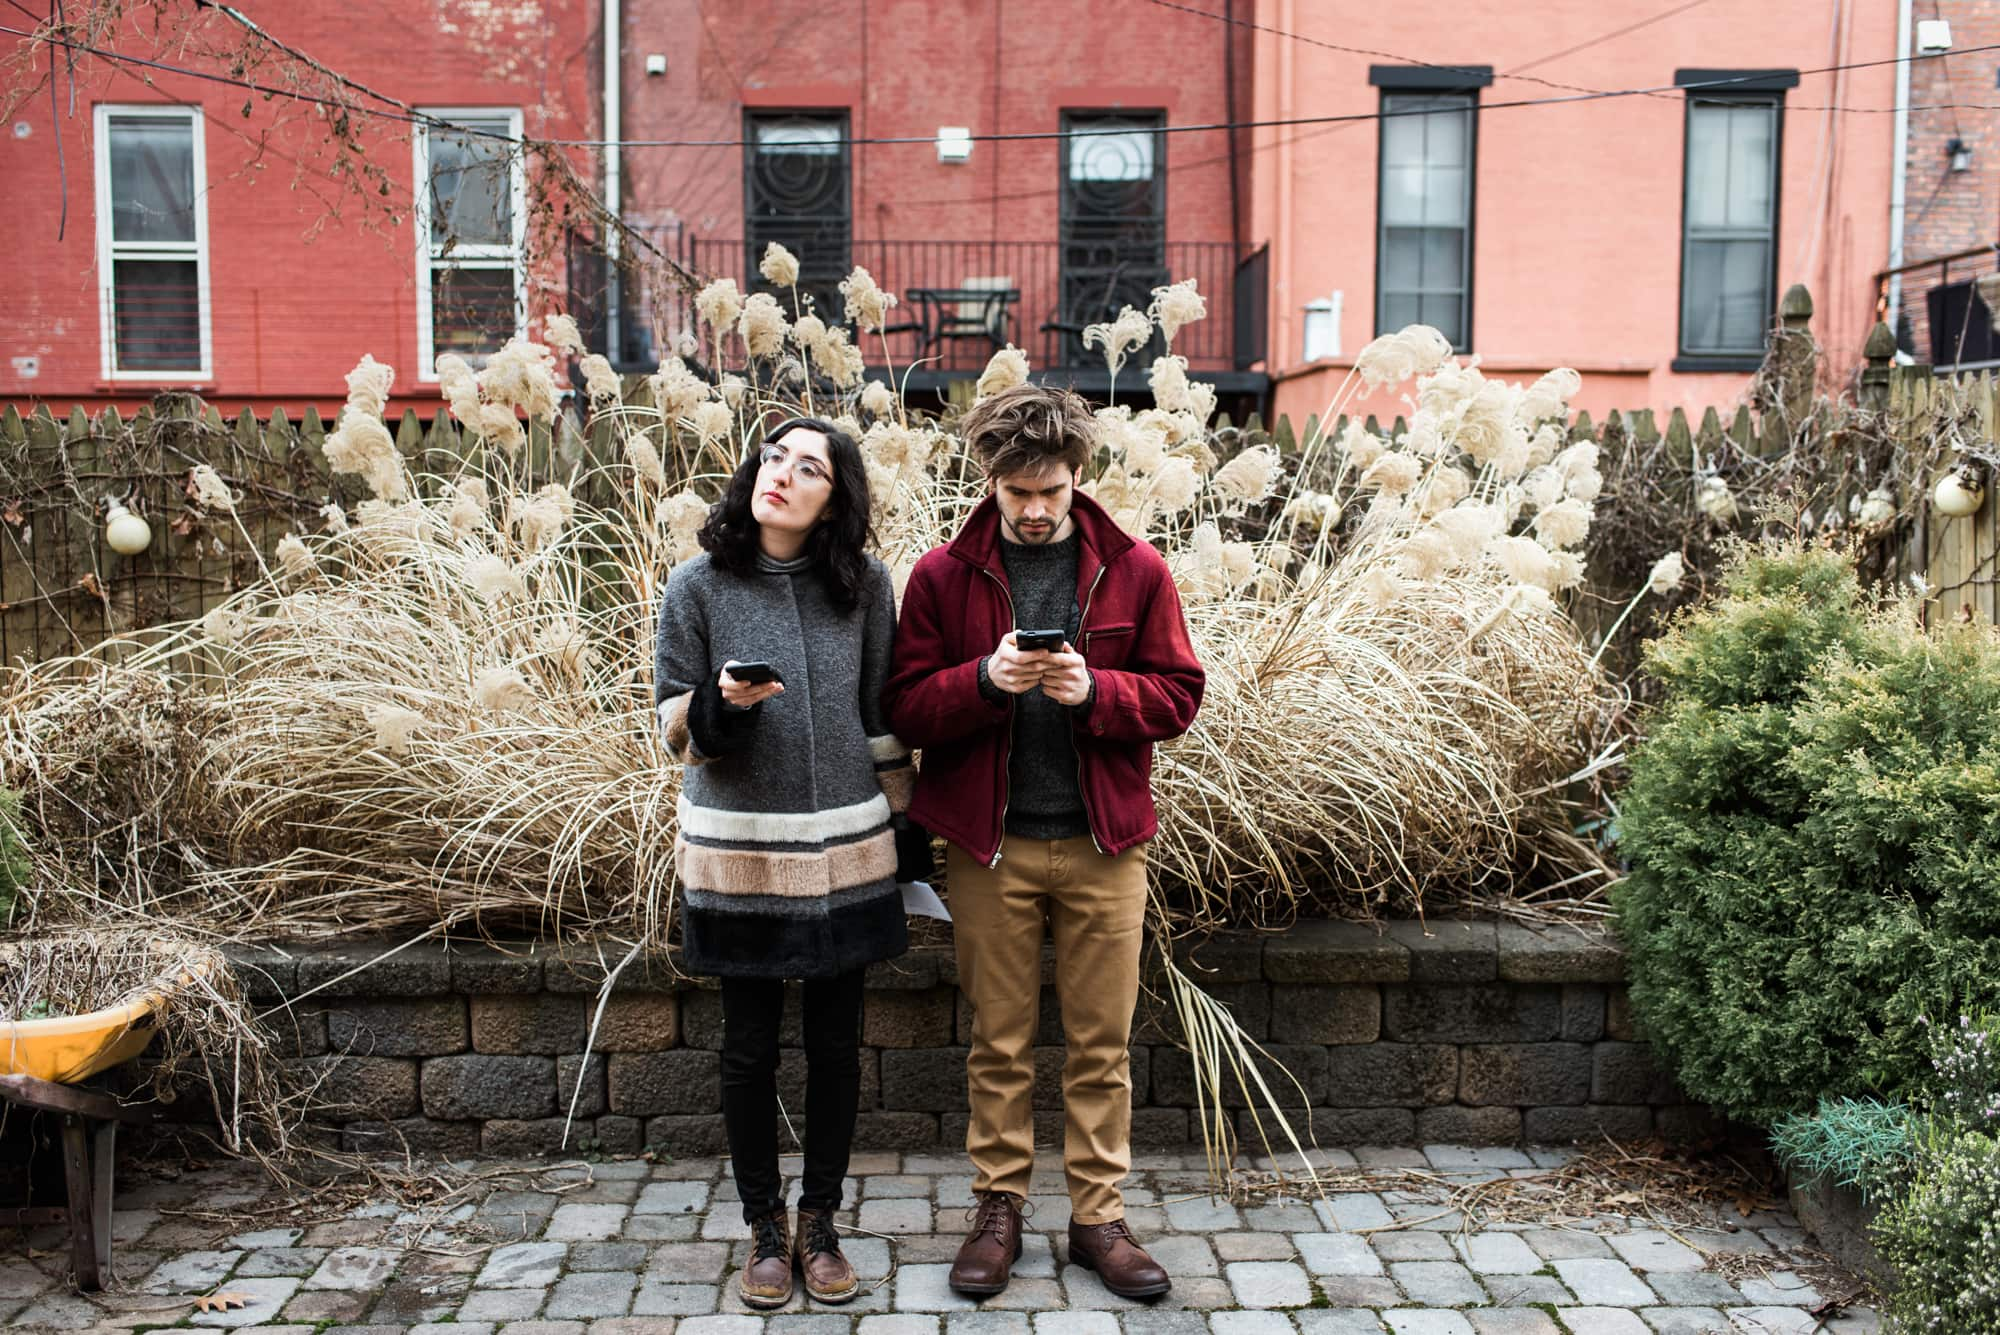 Bed Stuy Portrait Session, Brooklyn Engagement Session, Brooklyn Wedding Photographer, Eileen Meny Photography